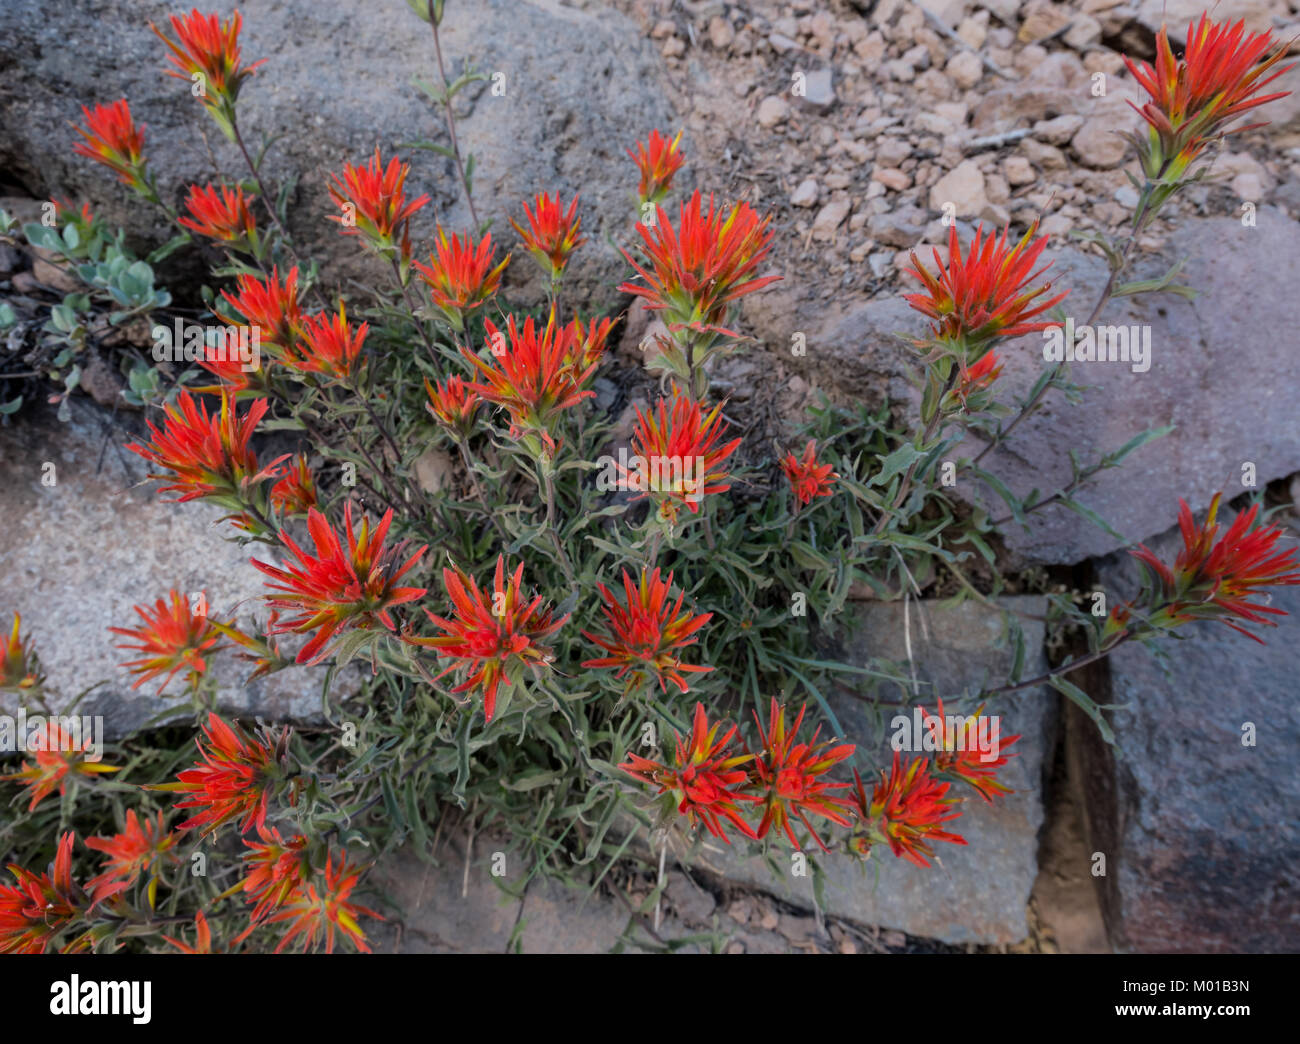 Bush of Indian Paintbrush Flowers growing out of rocky trail - Stock Image